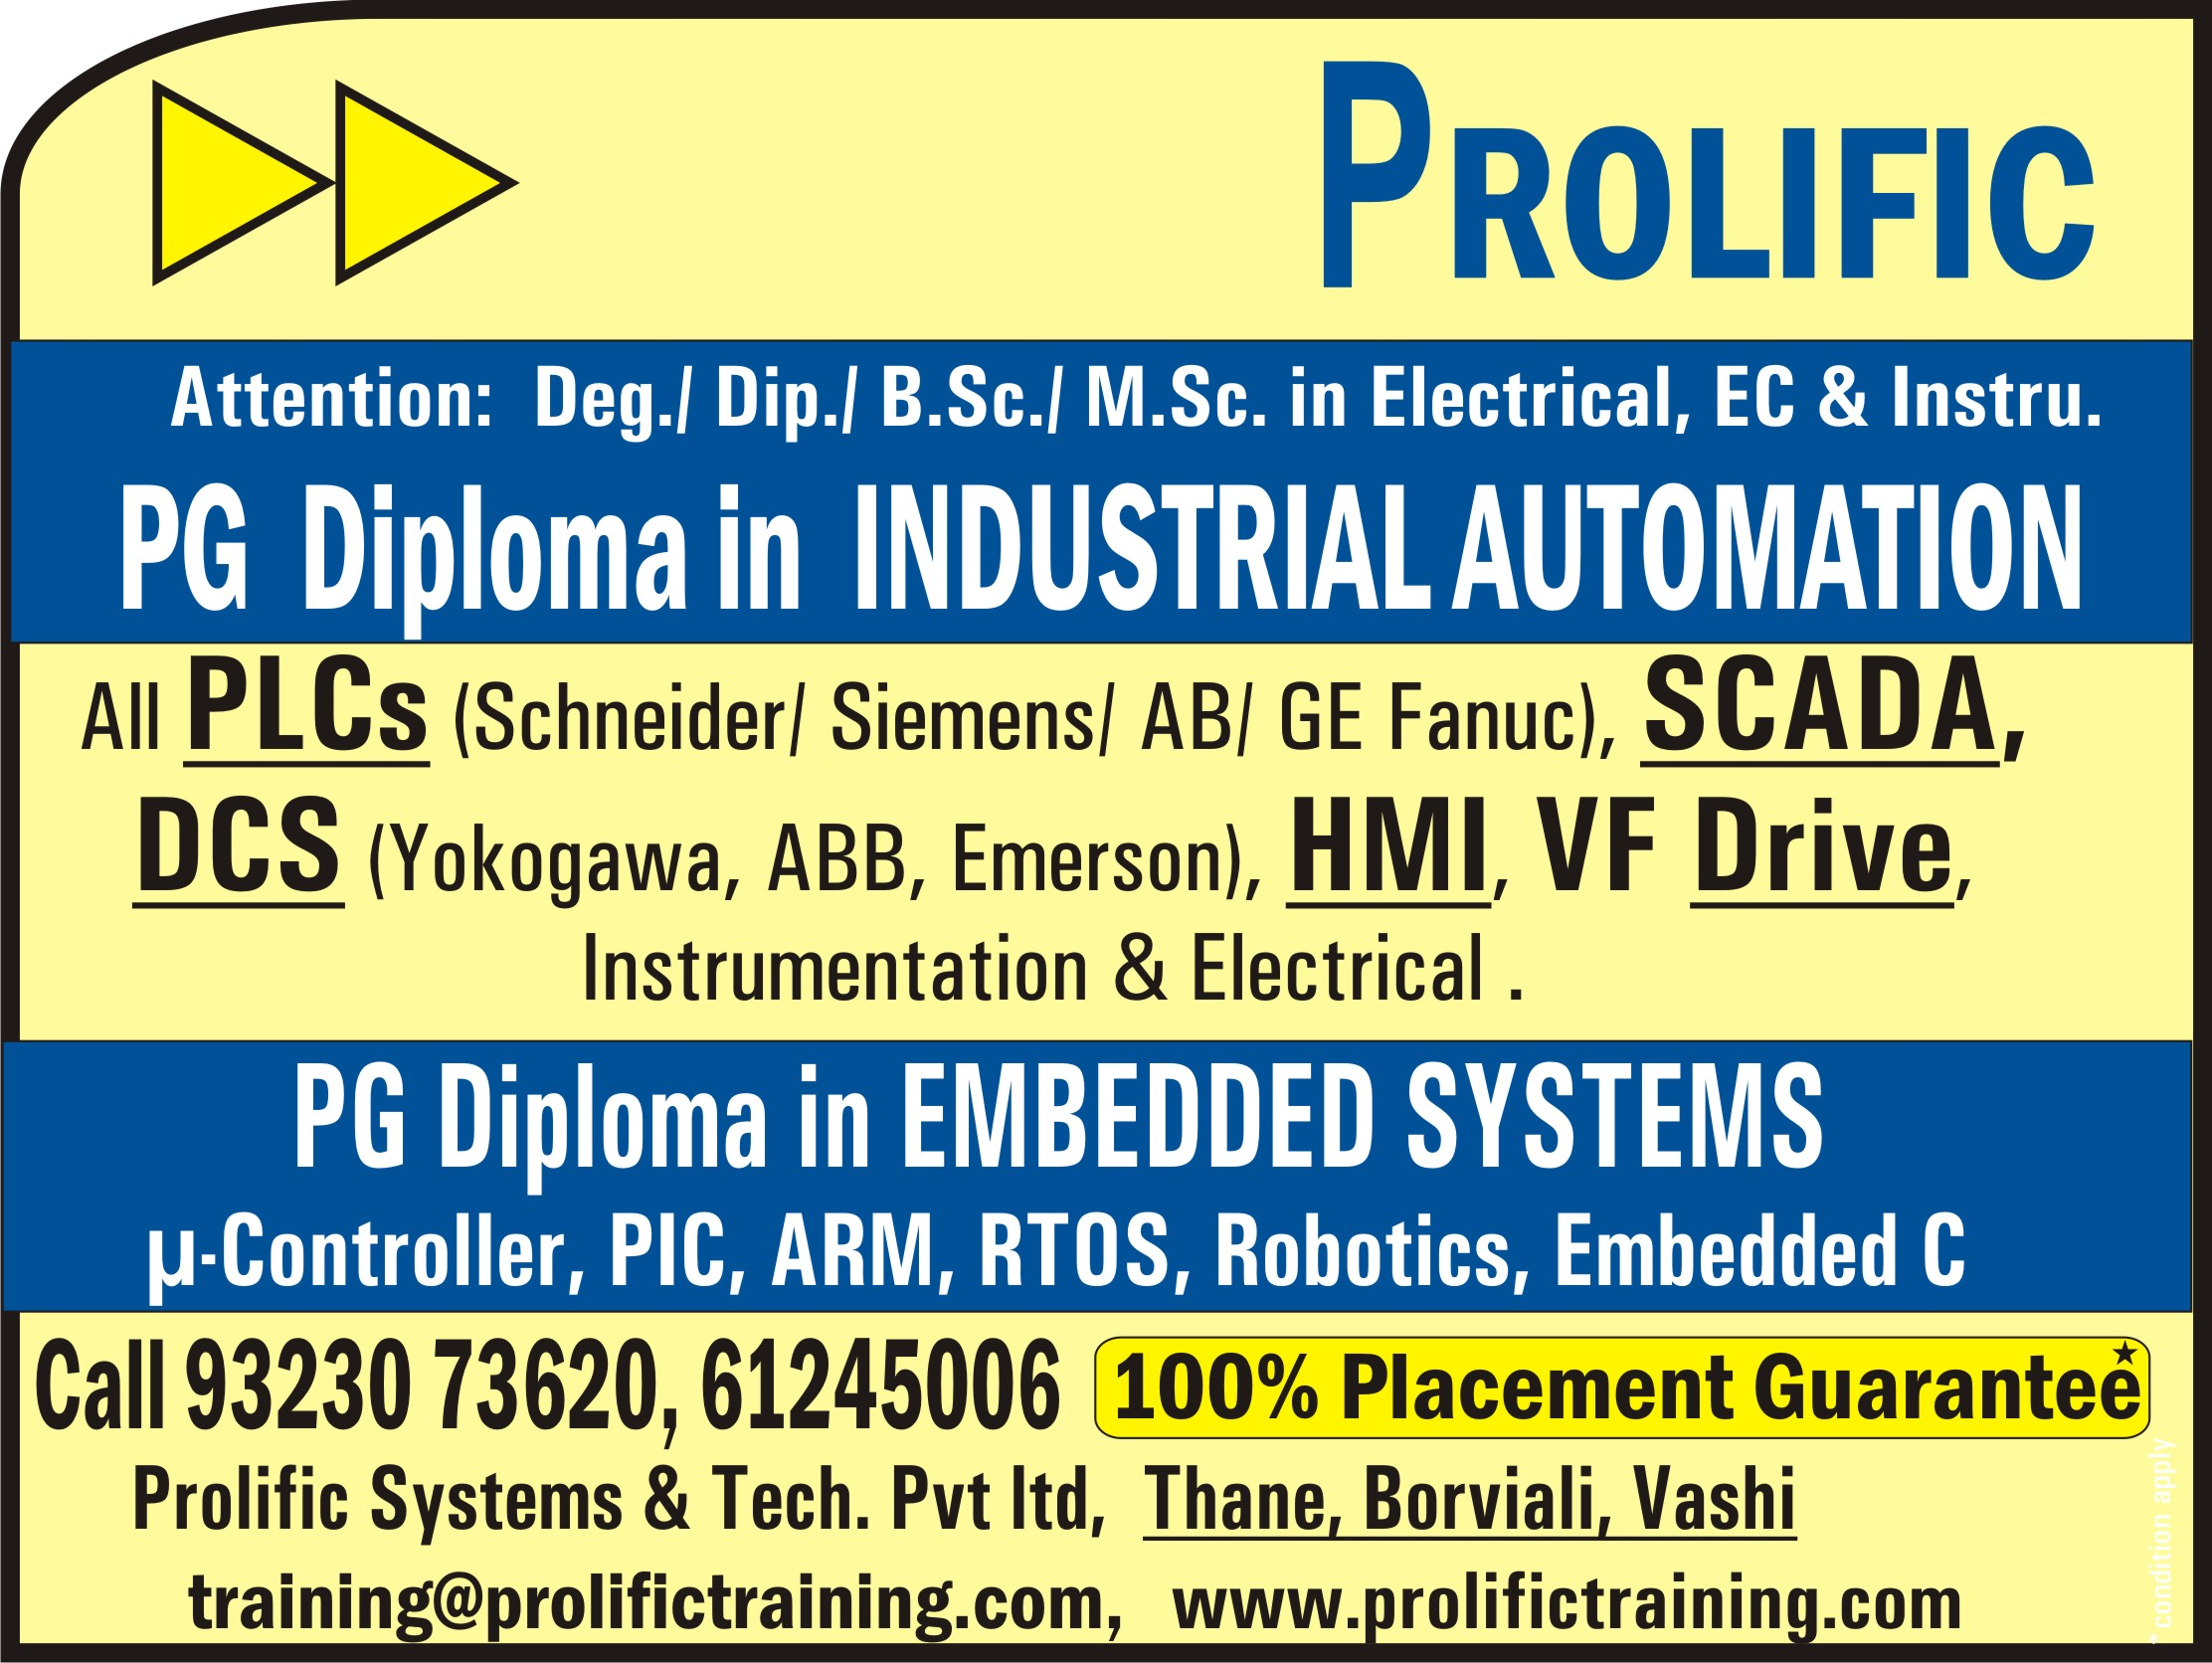 Plc training training in mumbai by prolific systems technologies omk8tautomation mumbaig 1betcityfo Image collections